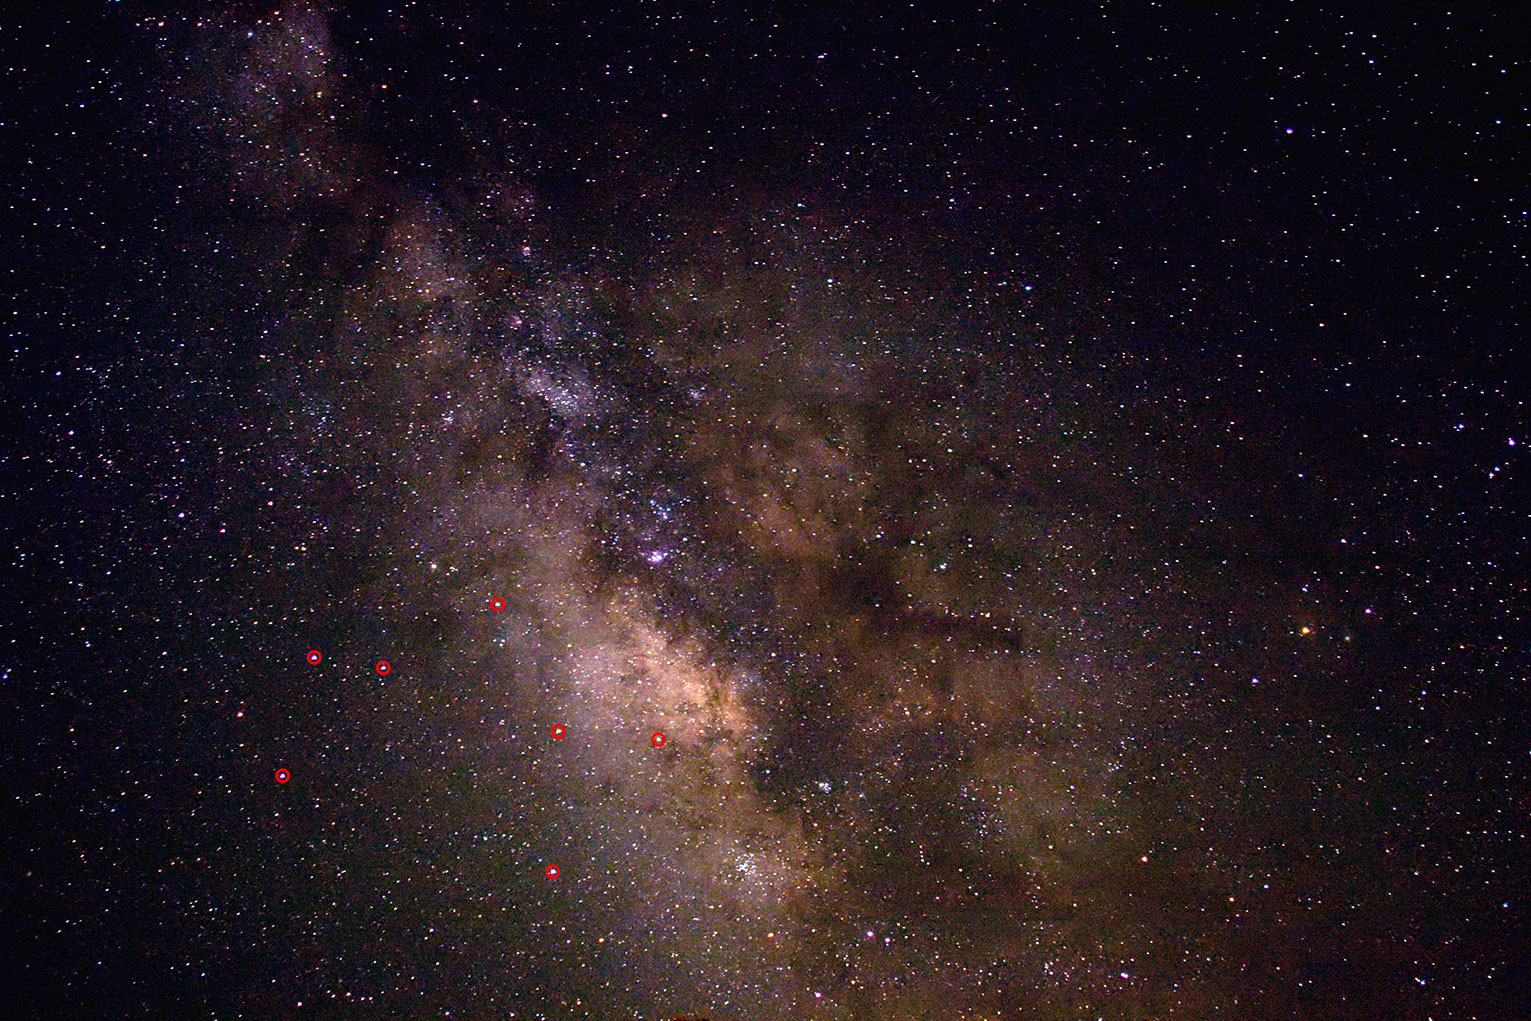 File:Milky way 2 md.jpg - Wikipedia, the free encyclopedia